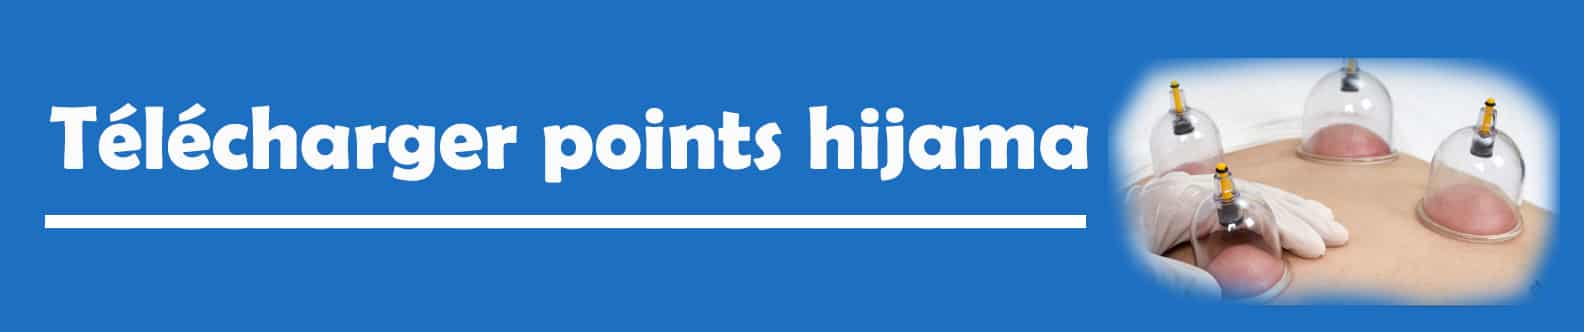 telecharger points de hijama